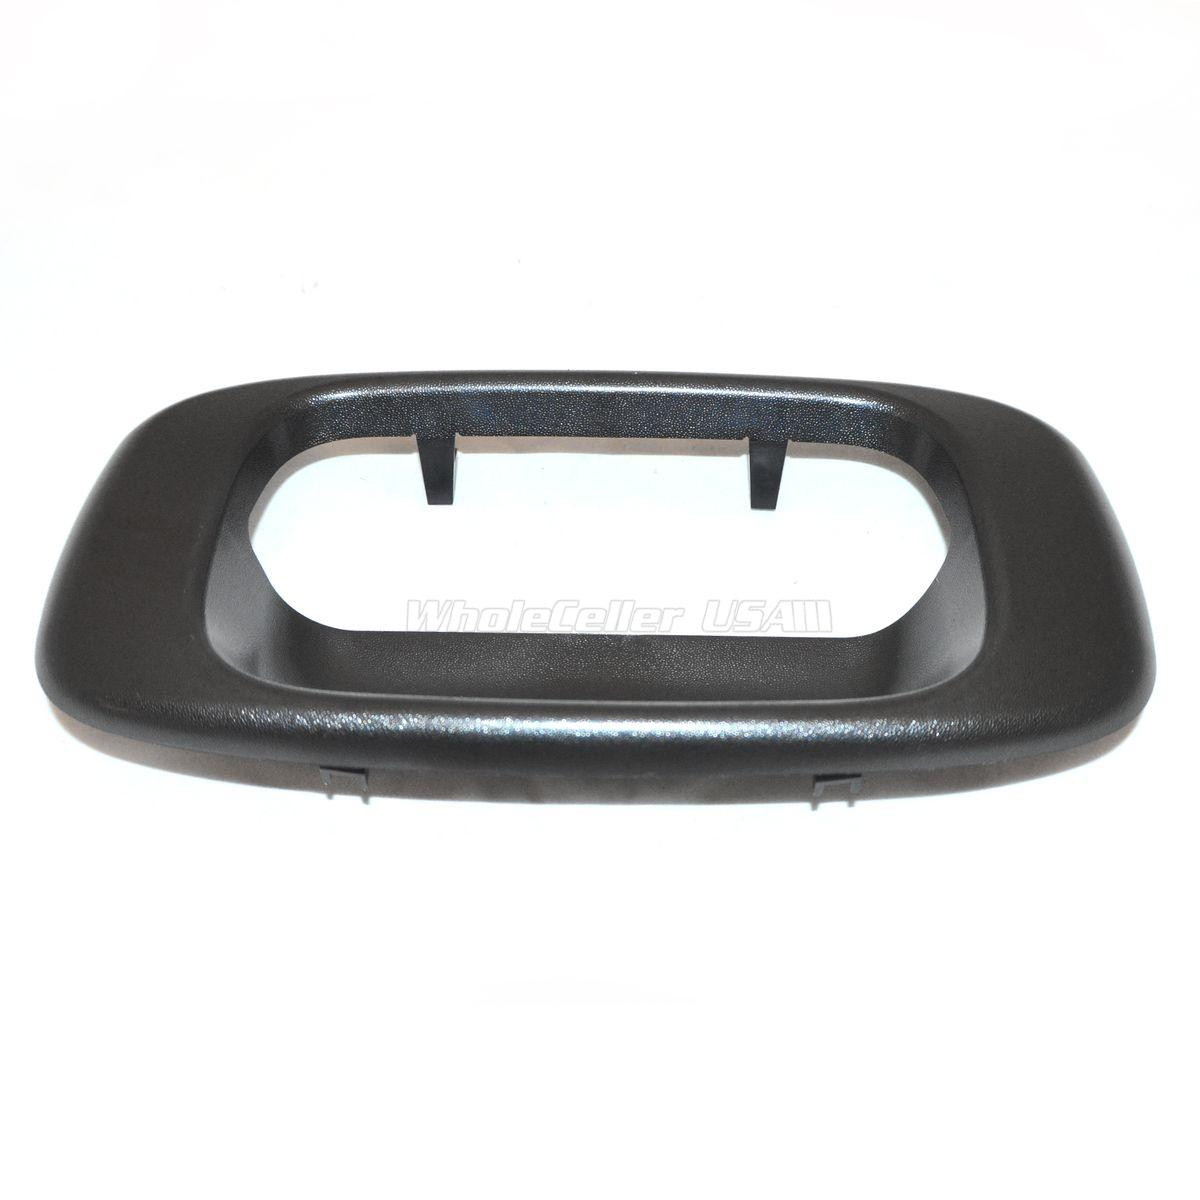 76106 Black Rear Tailgate Handle Bezel Door Handle for 1999-2006 GMC Sierra 1500